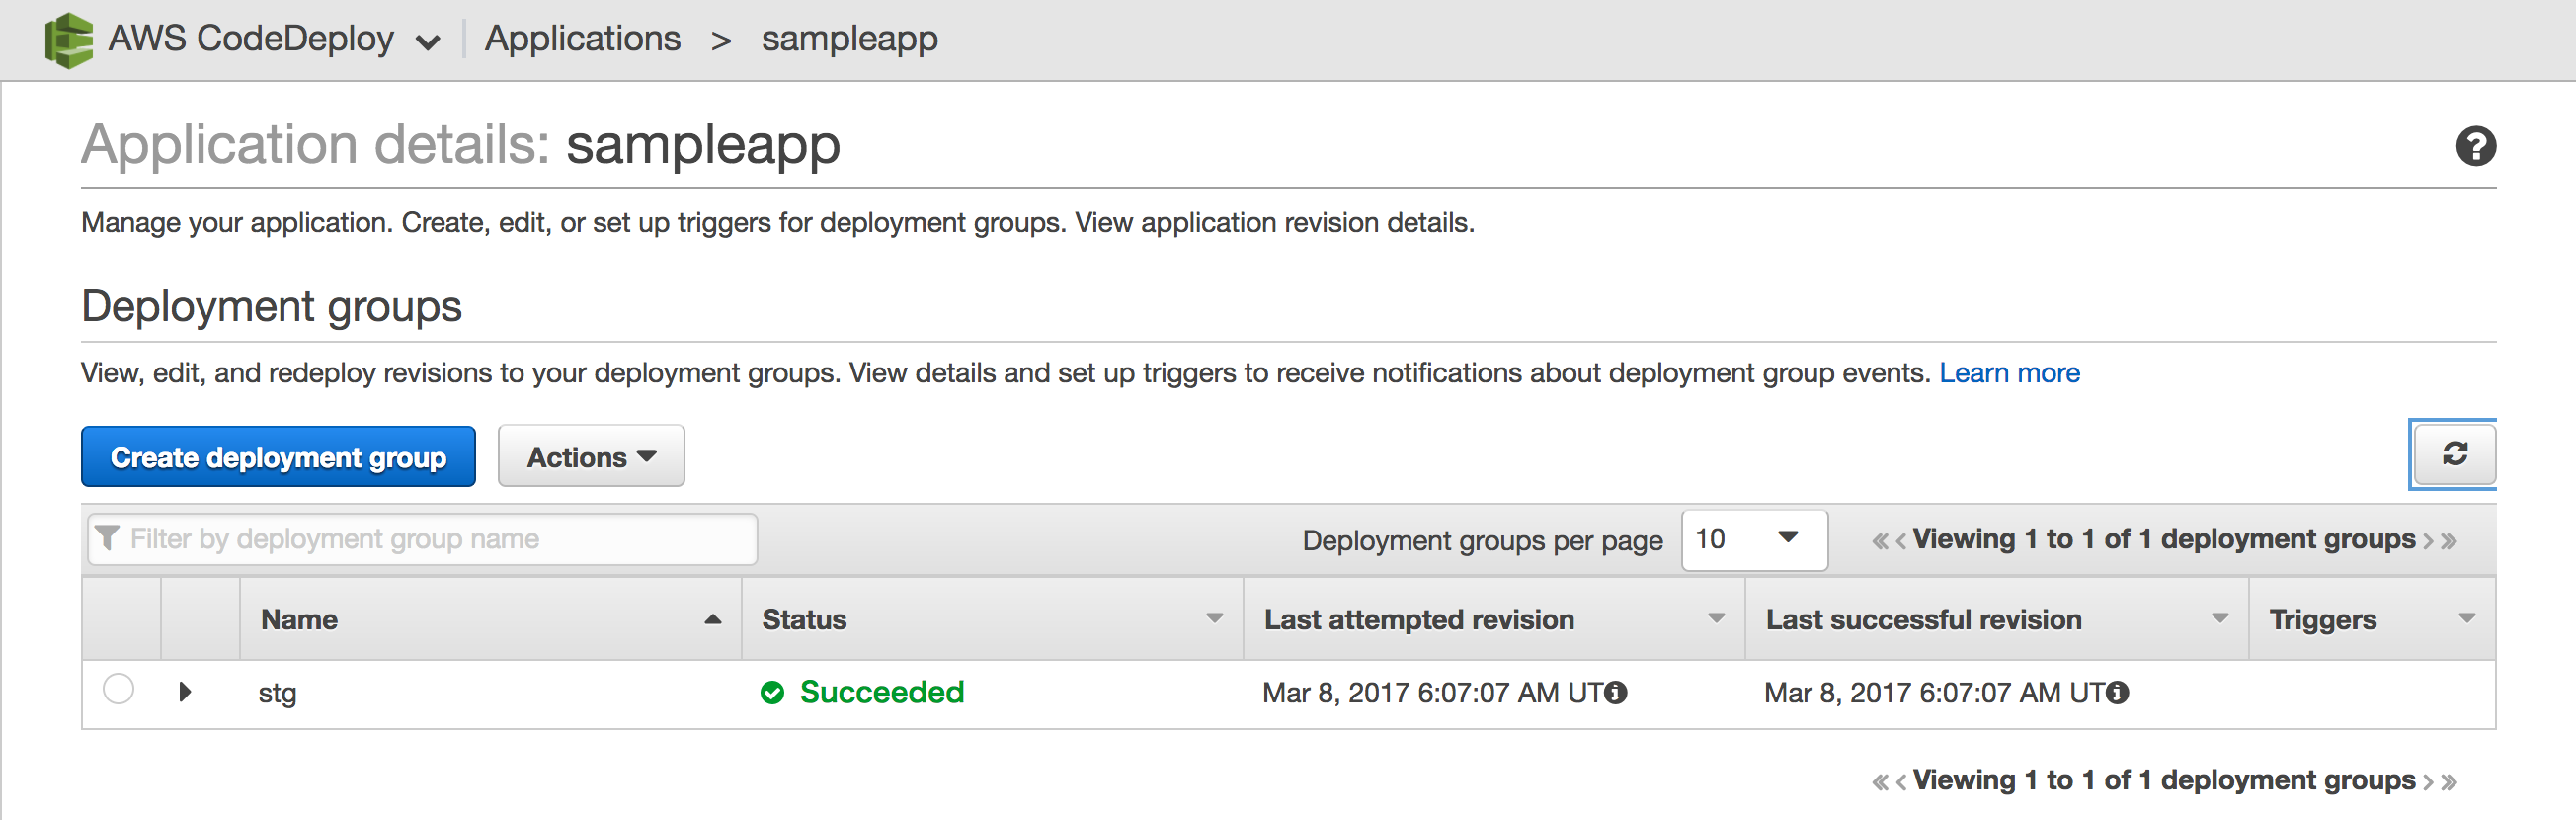 AWS_CodeDeploy_Management_2